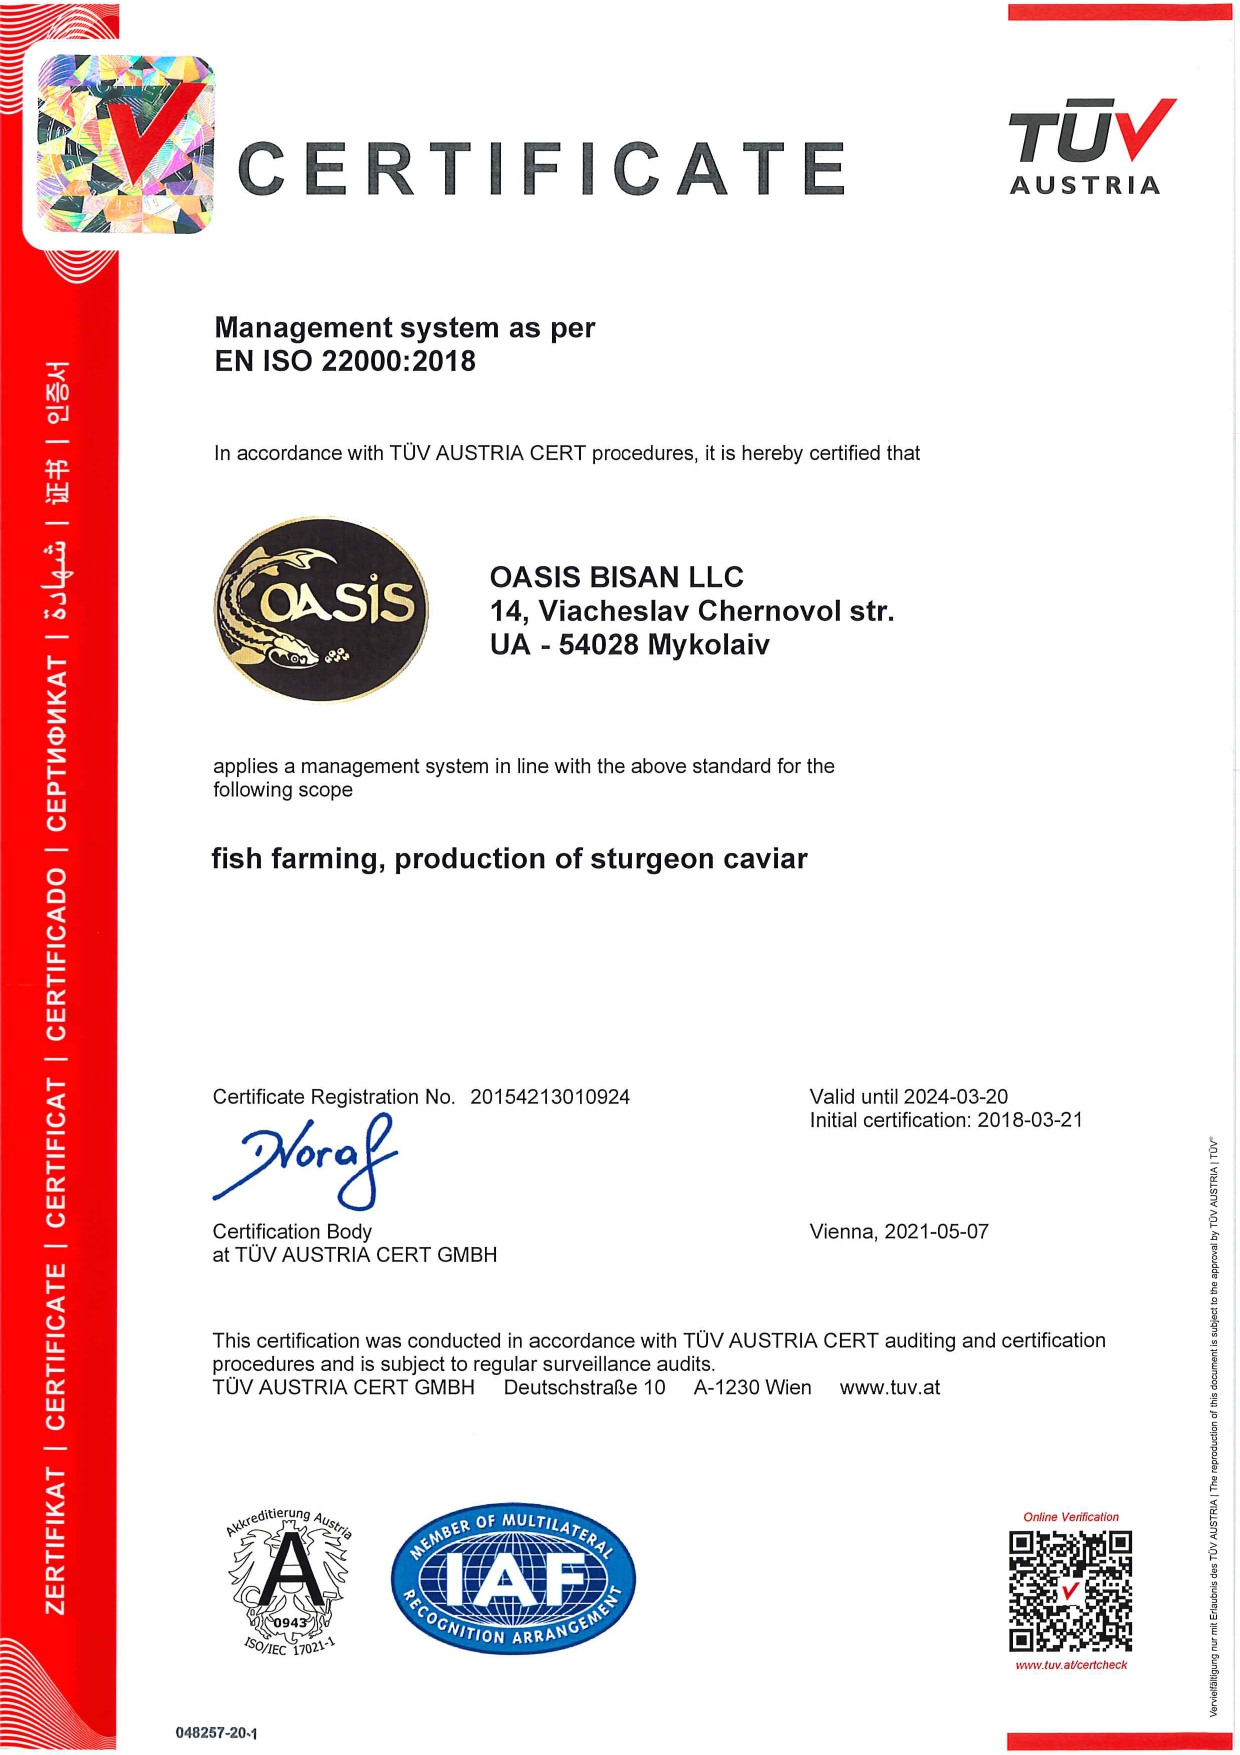 ISO certificate in English